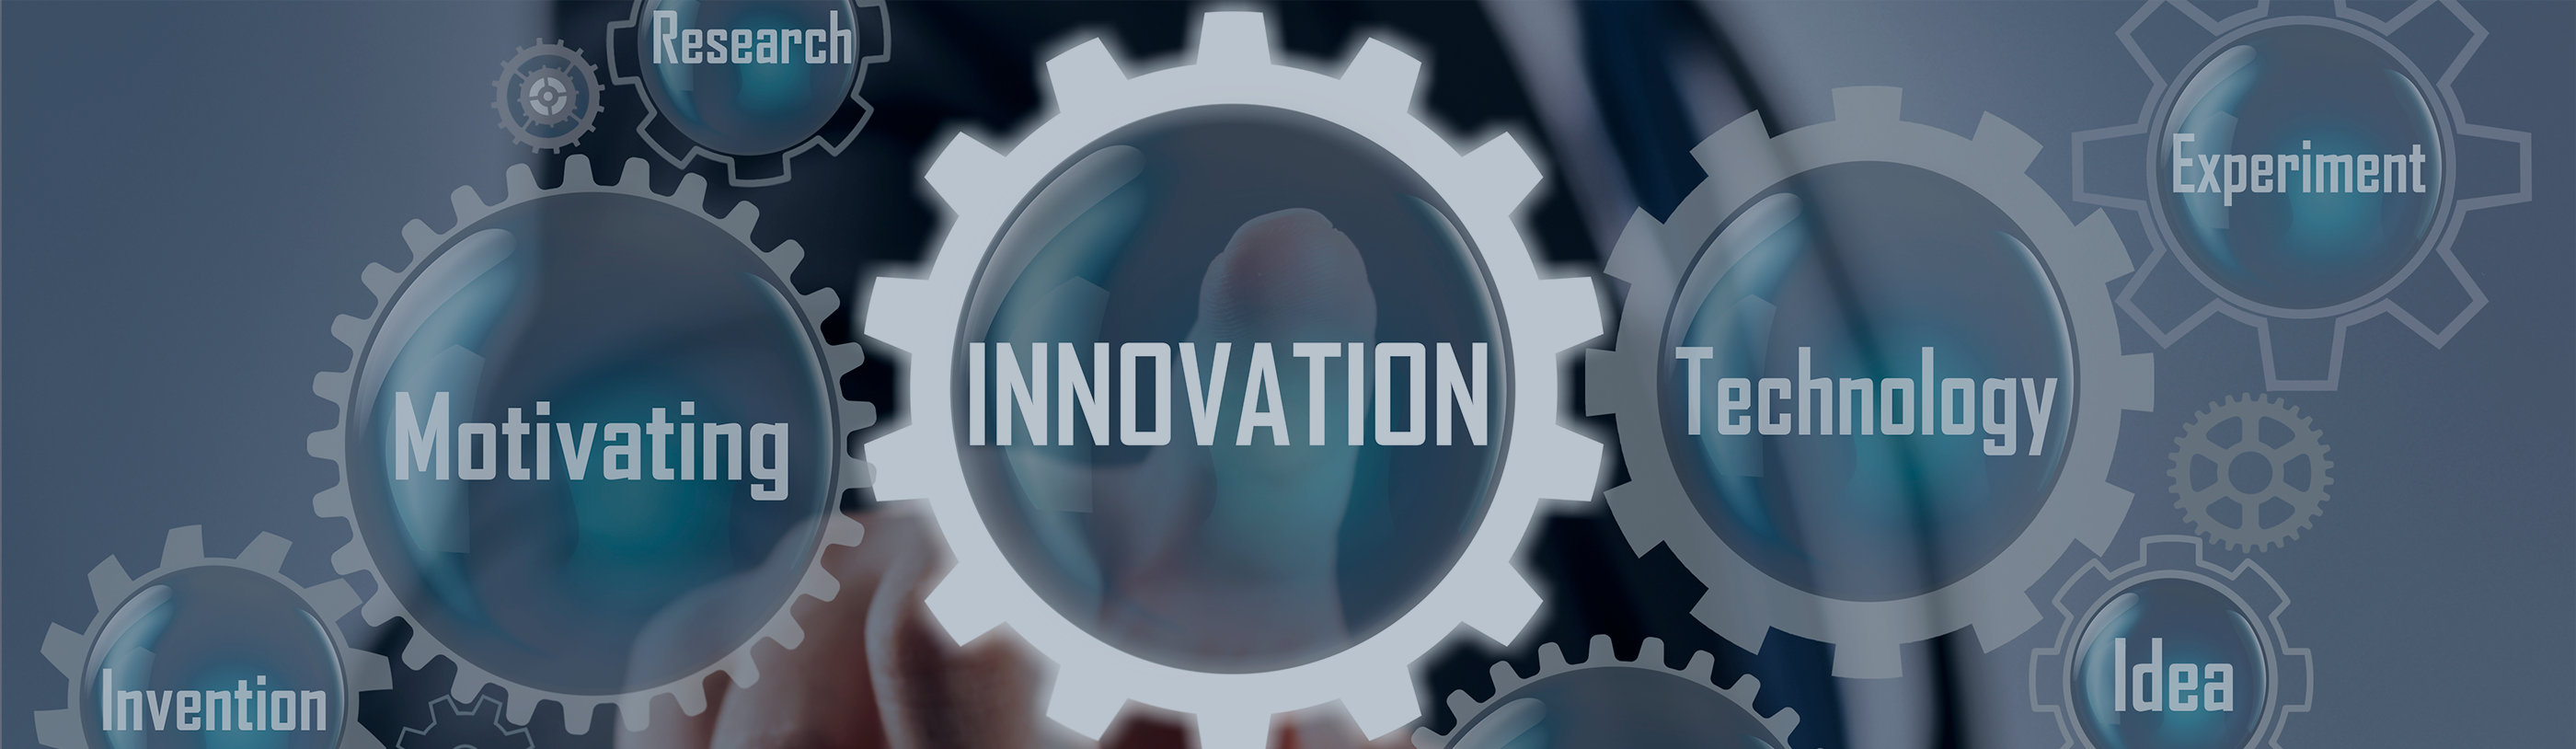 Innovation Concept _iStock-698338060